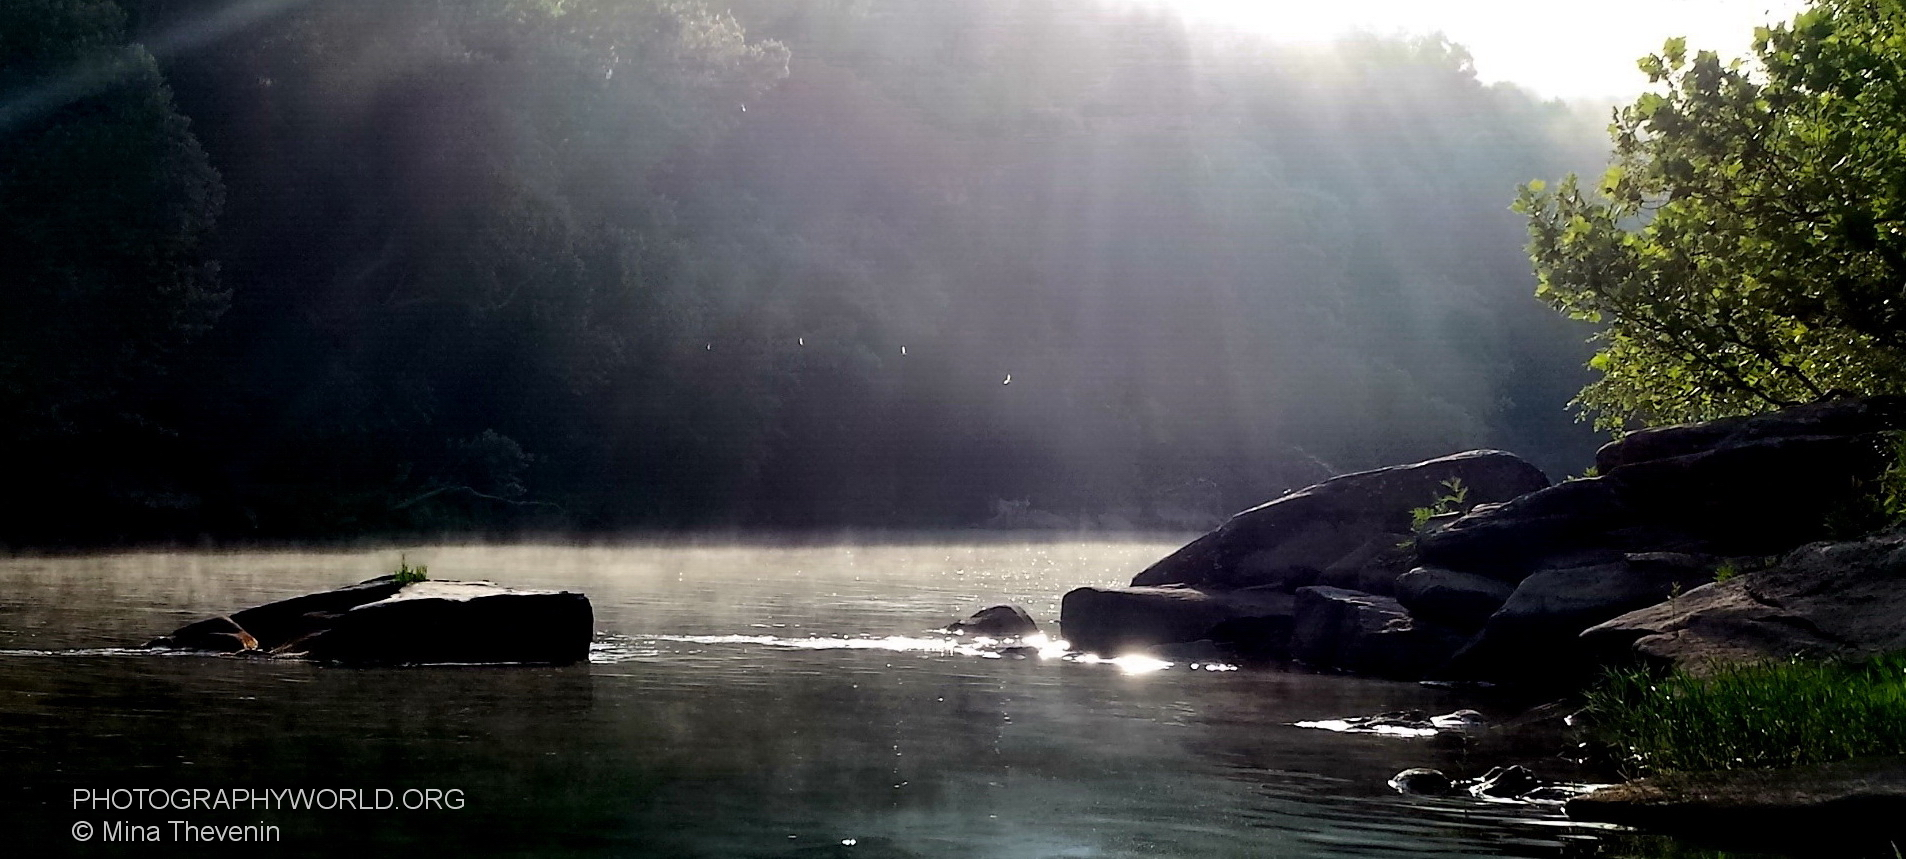 Morning Fog on the Summer BIG SOUTH FORK. Copyright image by Mina Thevenin @ https://photographyworld.org/nature/whitewater-canoeing/